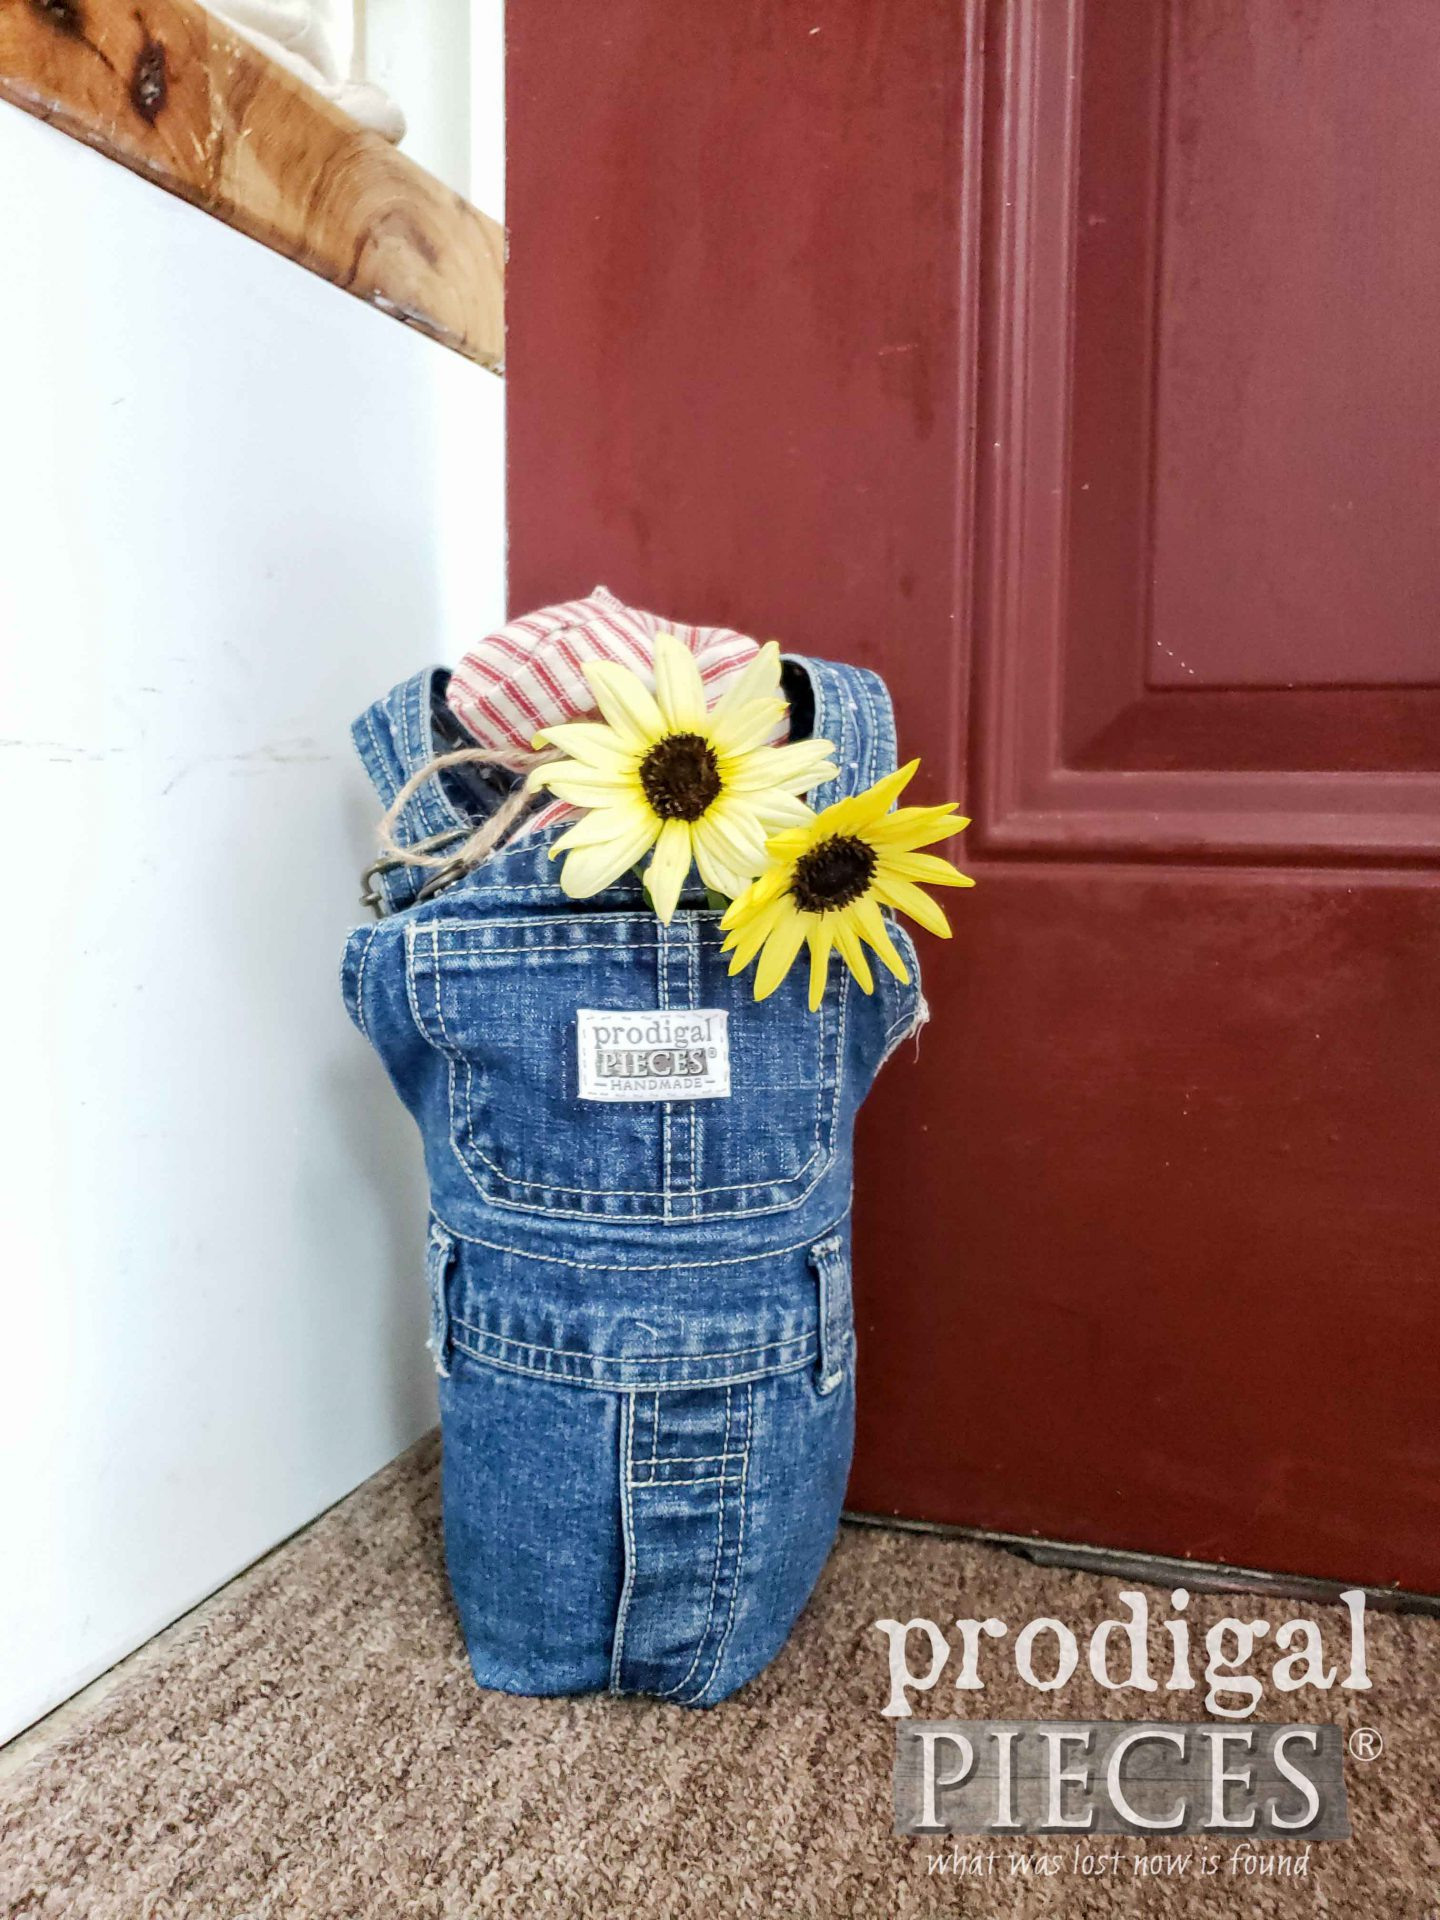 Upcycled Denim Doorstop Created from Baby Bib Overalls by Larissa of Prodigal Pieces | prodigalpieces.com #prodigalpieces #refashion #farmhouse #home #diy #homedecor